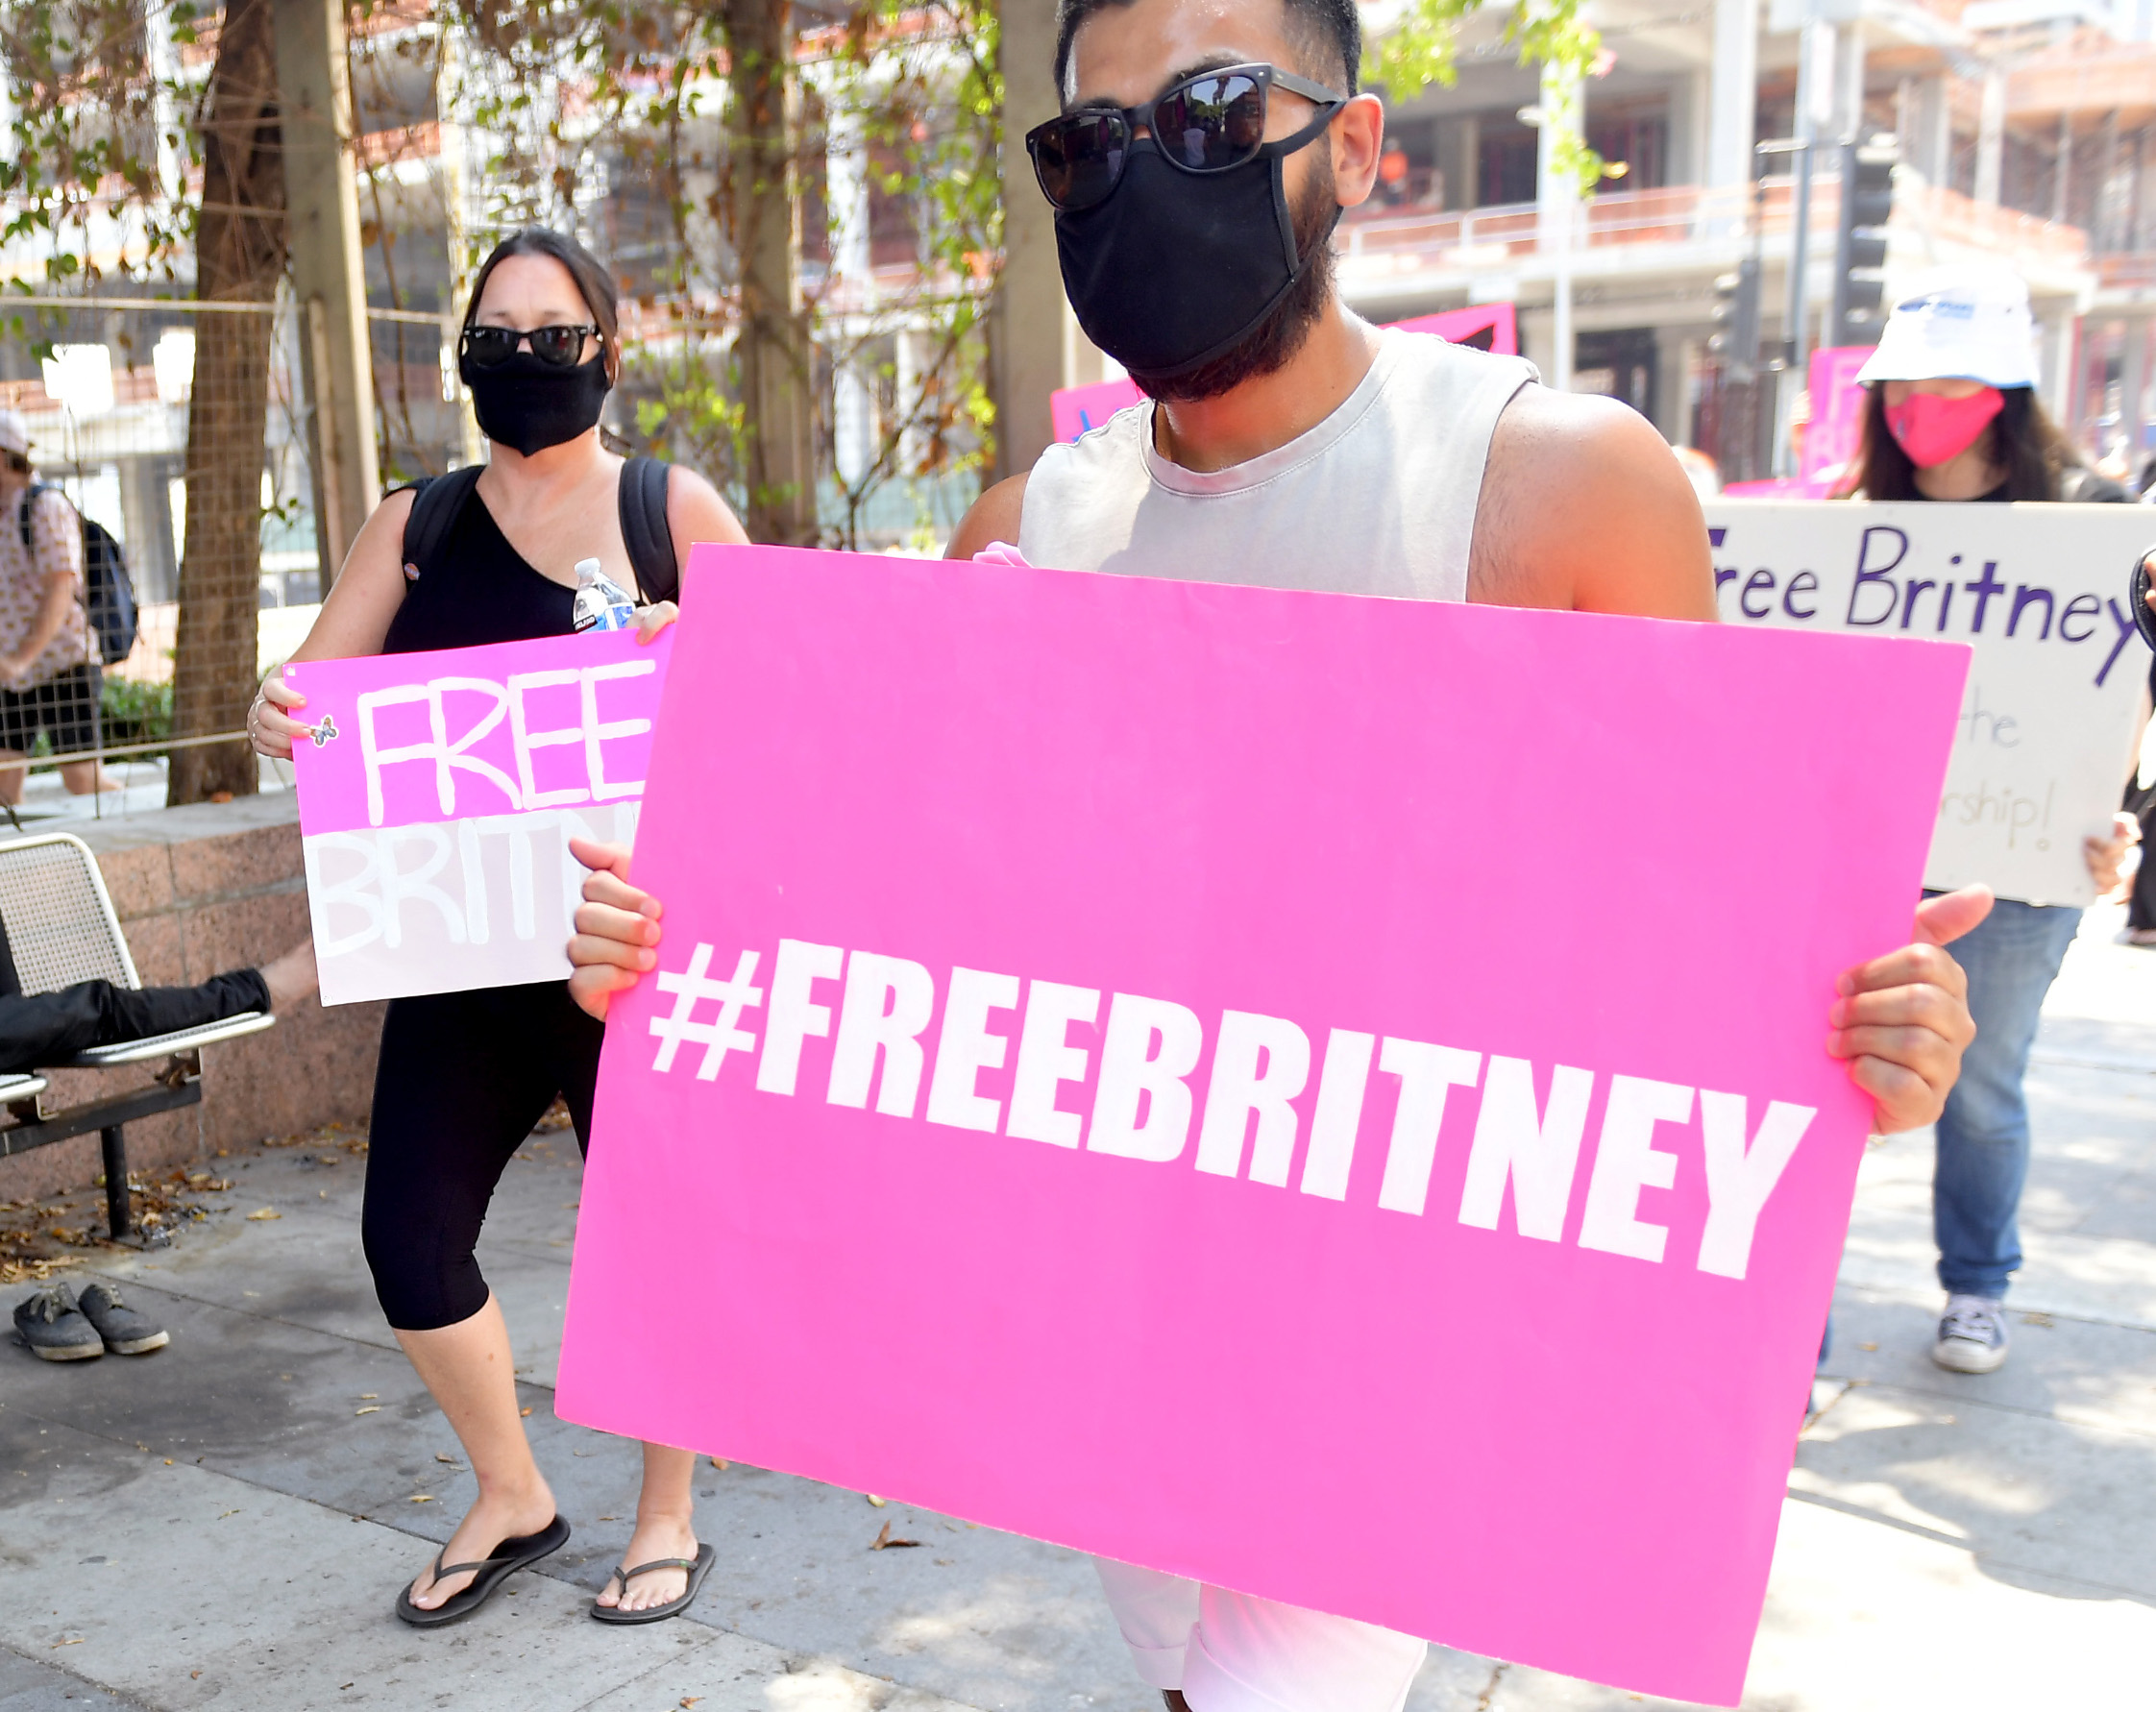 LOS ANGELES, CALIFORNIA - AUGUST 19: Supporters of Britney Spears gather outside a courthouse in downtown for a #FreeBritney protest as a hearing regarding Spears' conservatorship is in session on August 19, 2020 in Los Angeles, California. Spears was placed in a conservatorship managed by her father, James Spears, and an attorney following her involuntary hospitalization for mental care in 2008. (Photo by Matt Winkelmeyer/Getty Images)